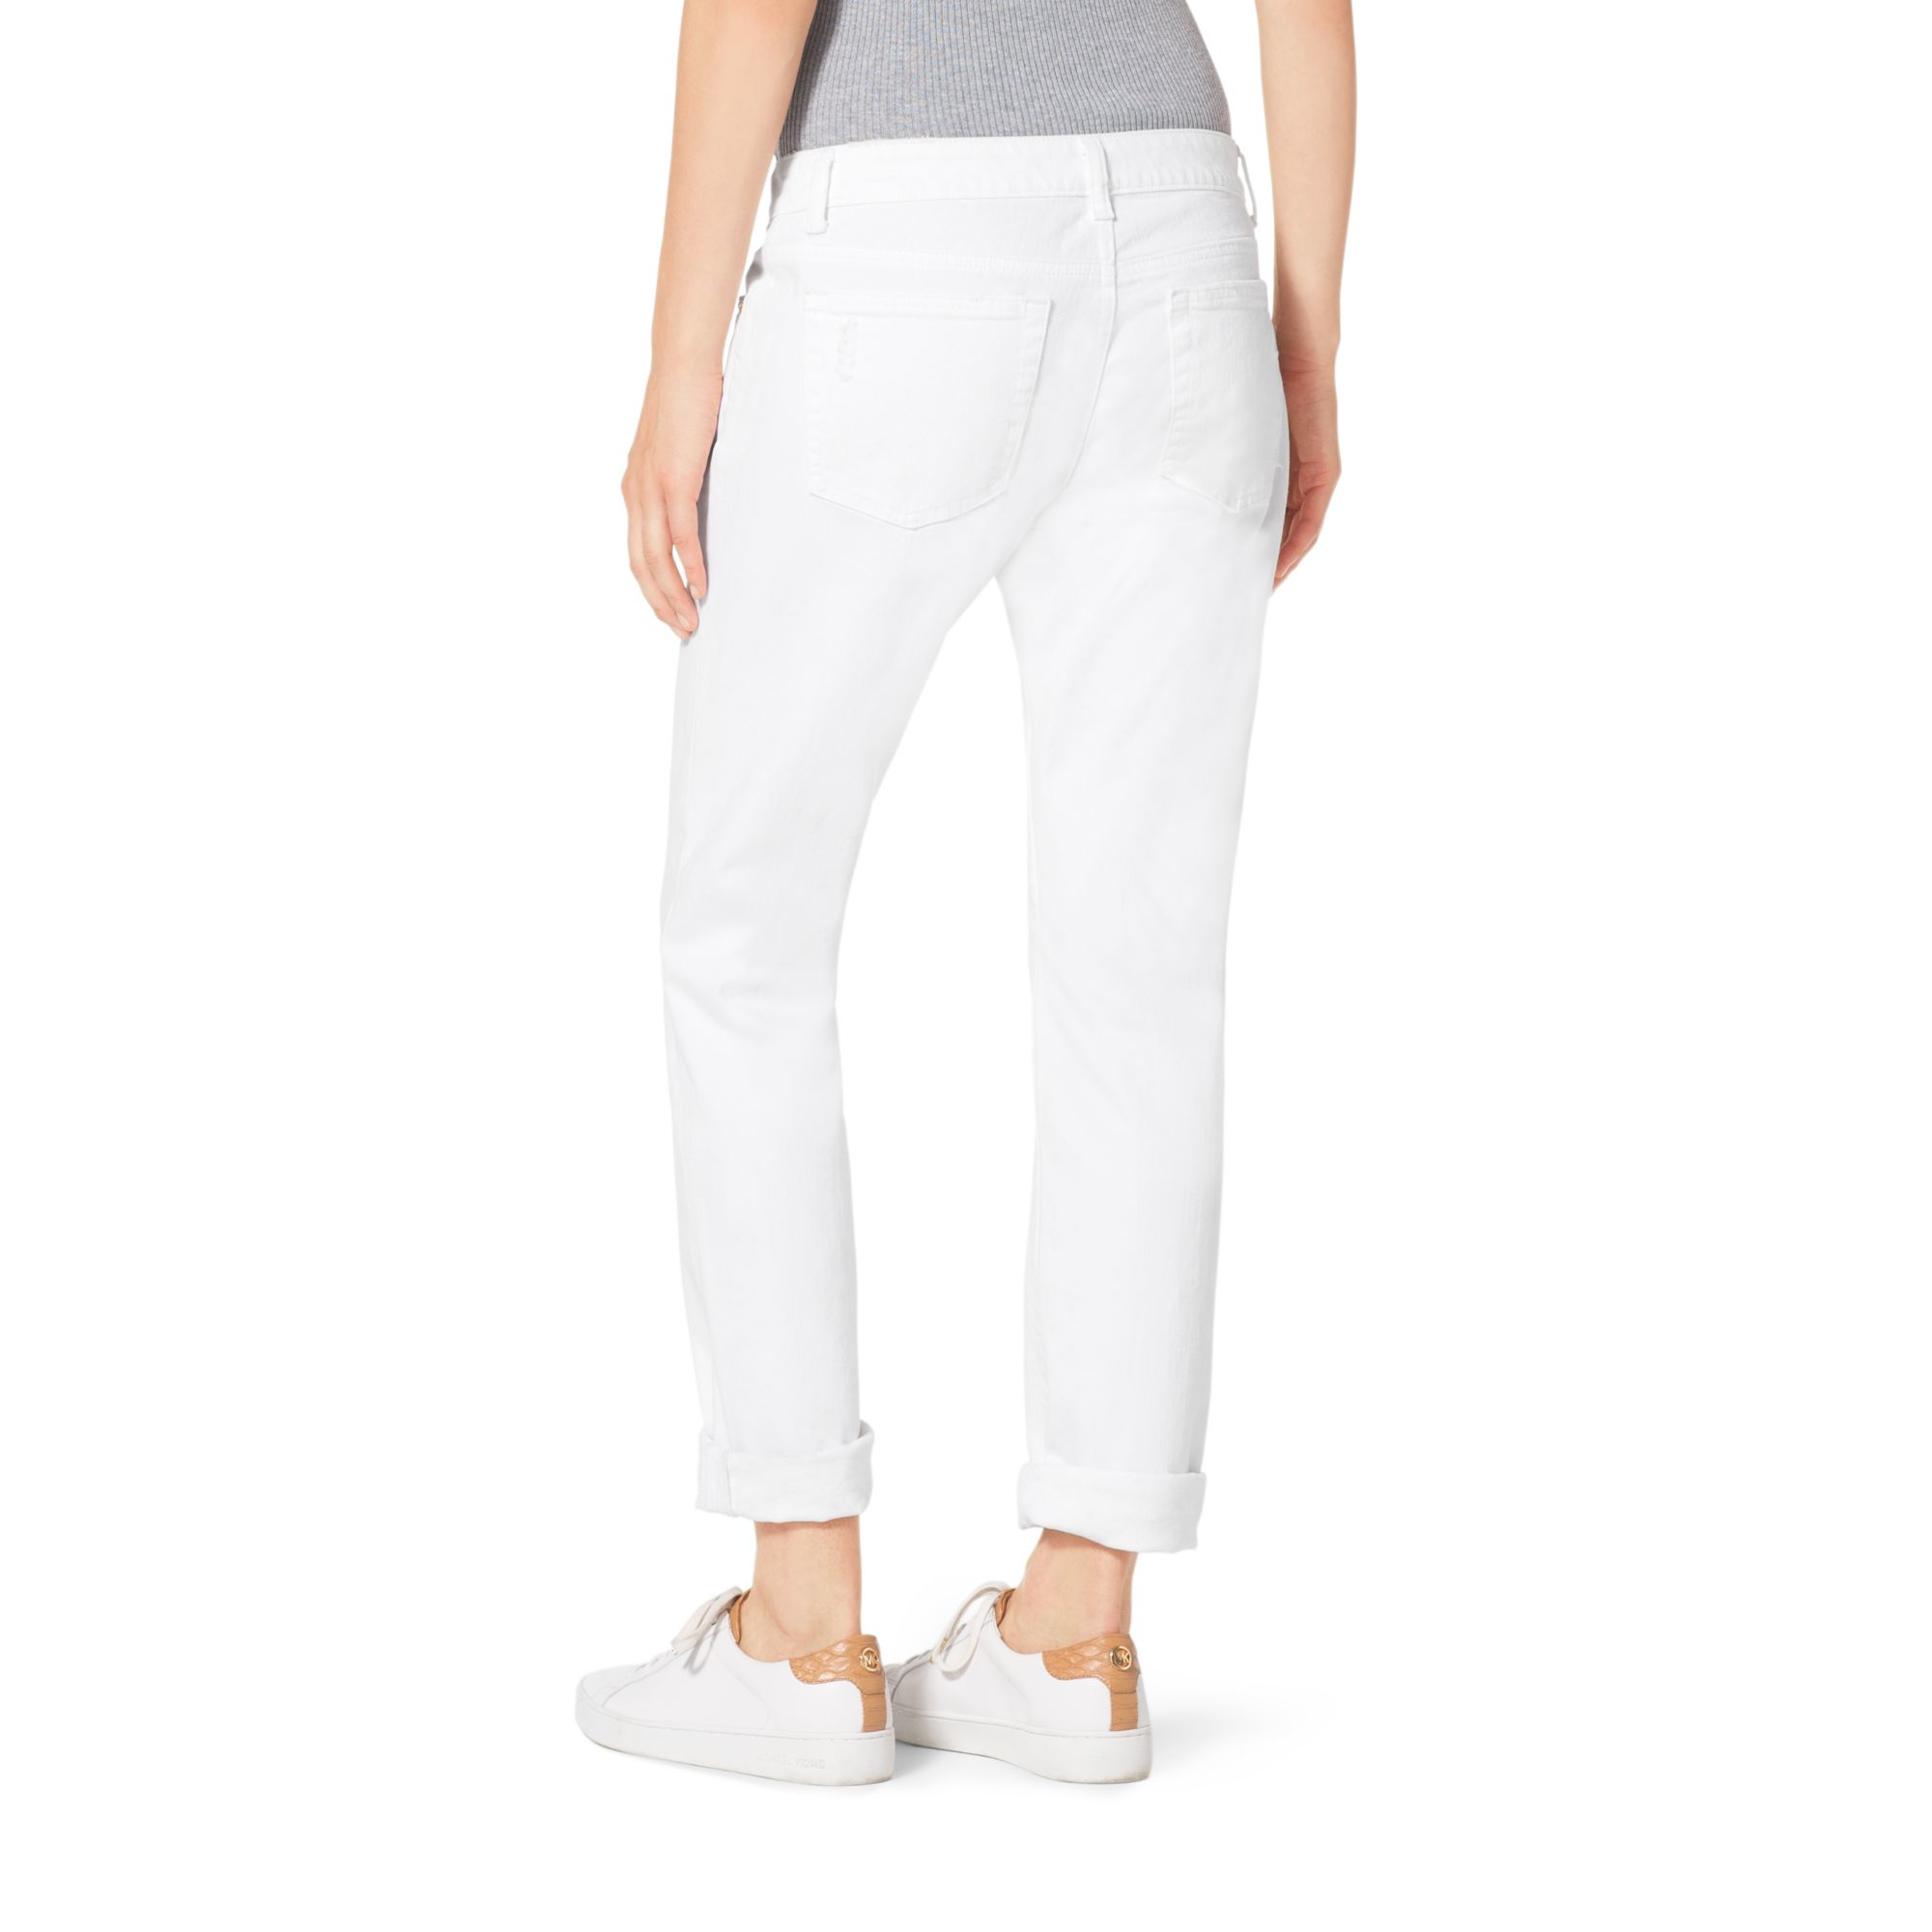 Lyst - Michael Kors Crystal-embellished Distressed Jeans in White d1aa52612